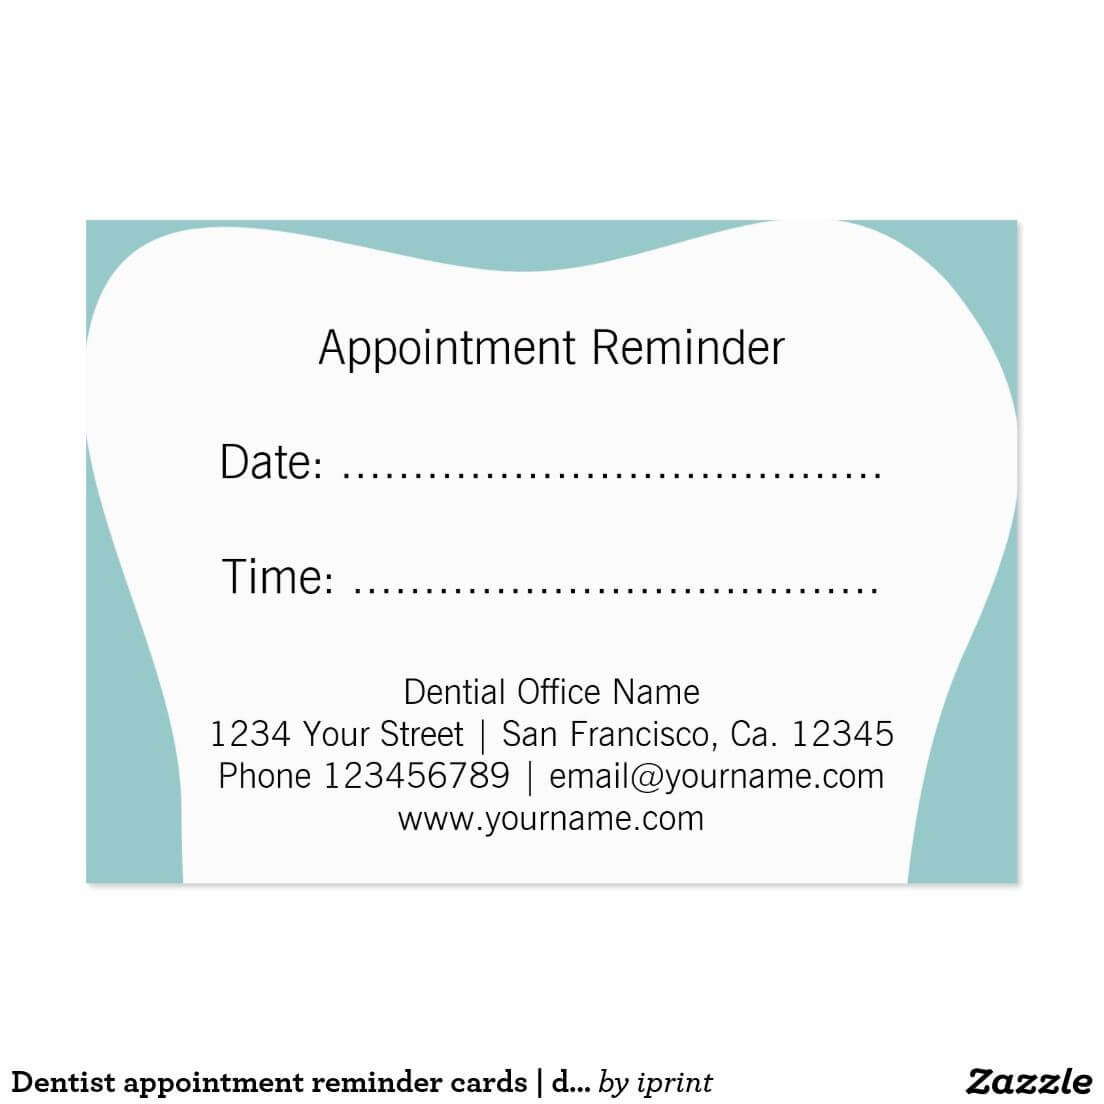 Dentist Appointment Reminder Cards | Dental Office | Zazzle Inside Appointment Card Template Word